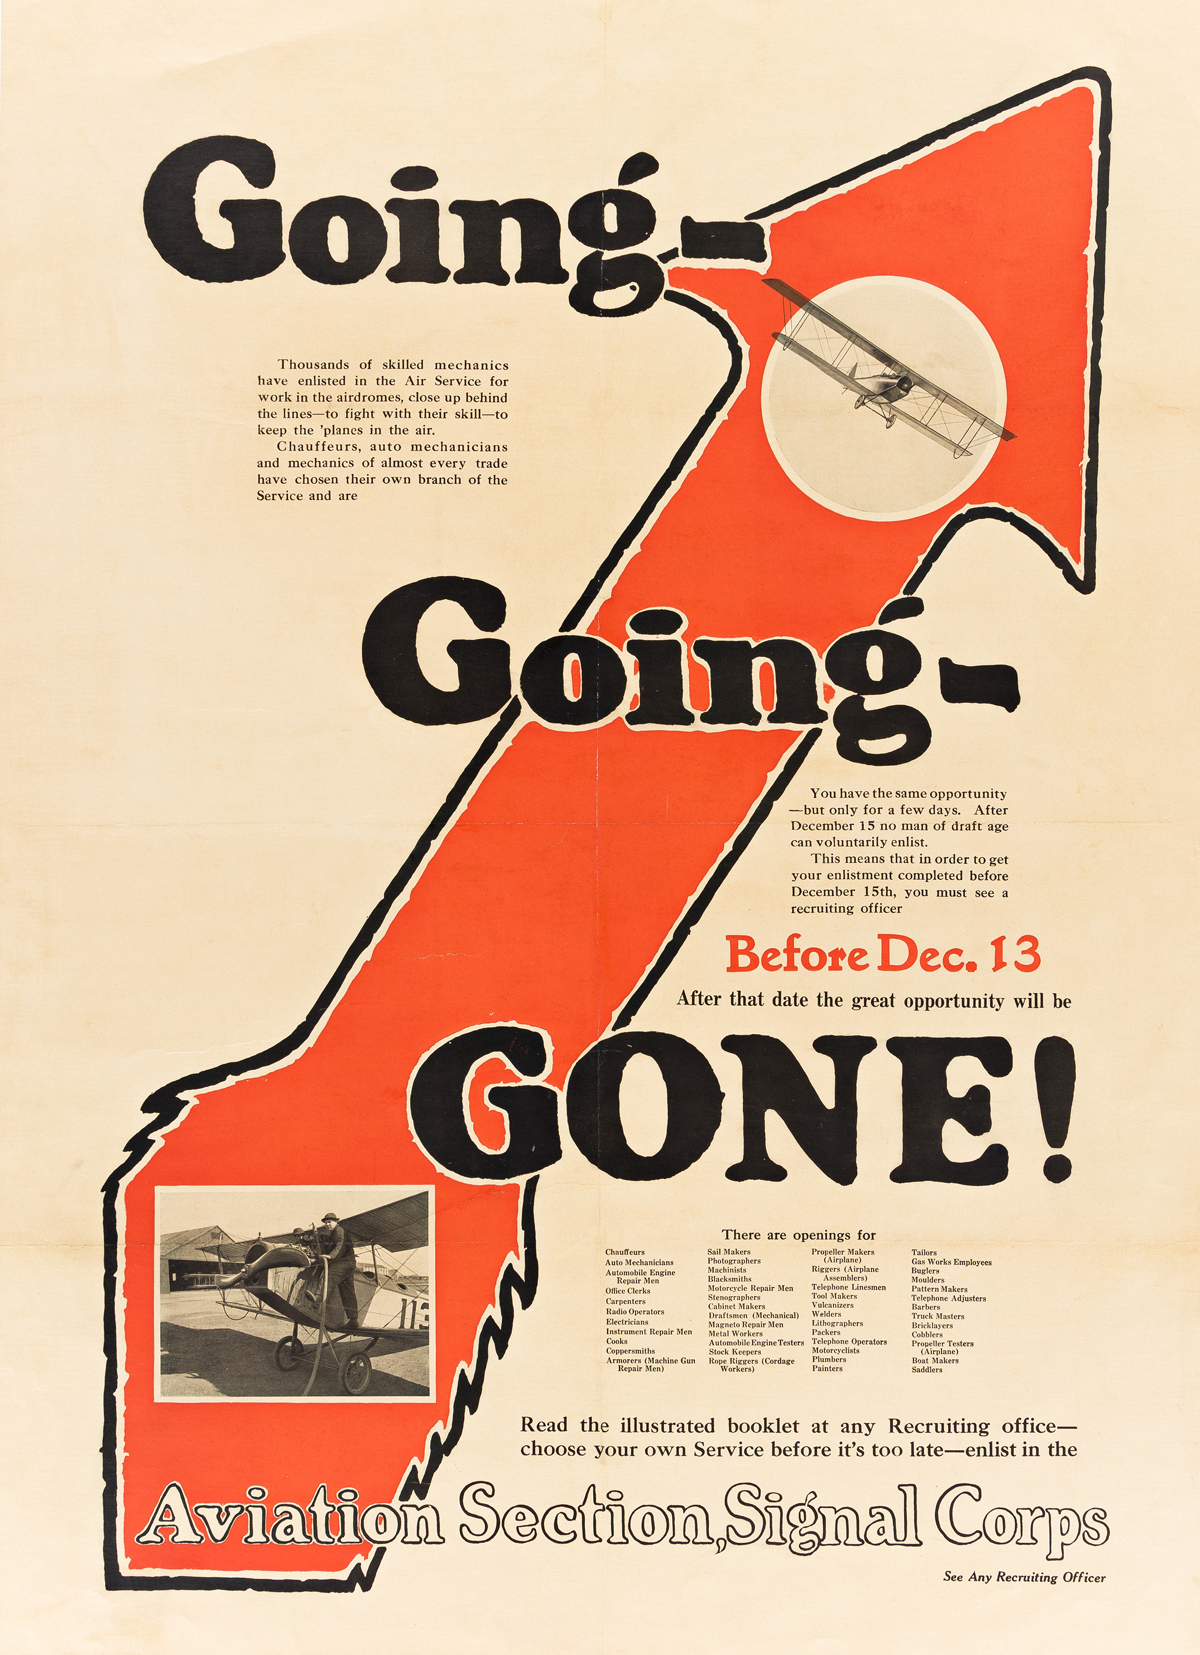 DESIGNER UNKNOWN.  GOING - GOING - GONE! / AVIATION SECTION, SIGNAL CORPS. Circa 1917. 42¼x30½ inches, 107¼x77½ cm.